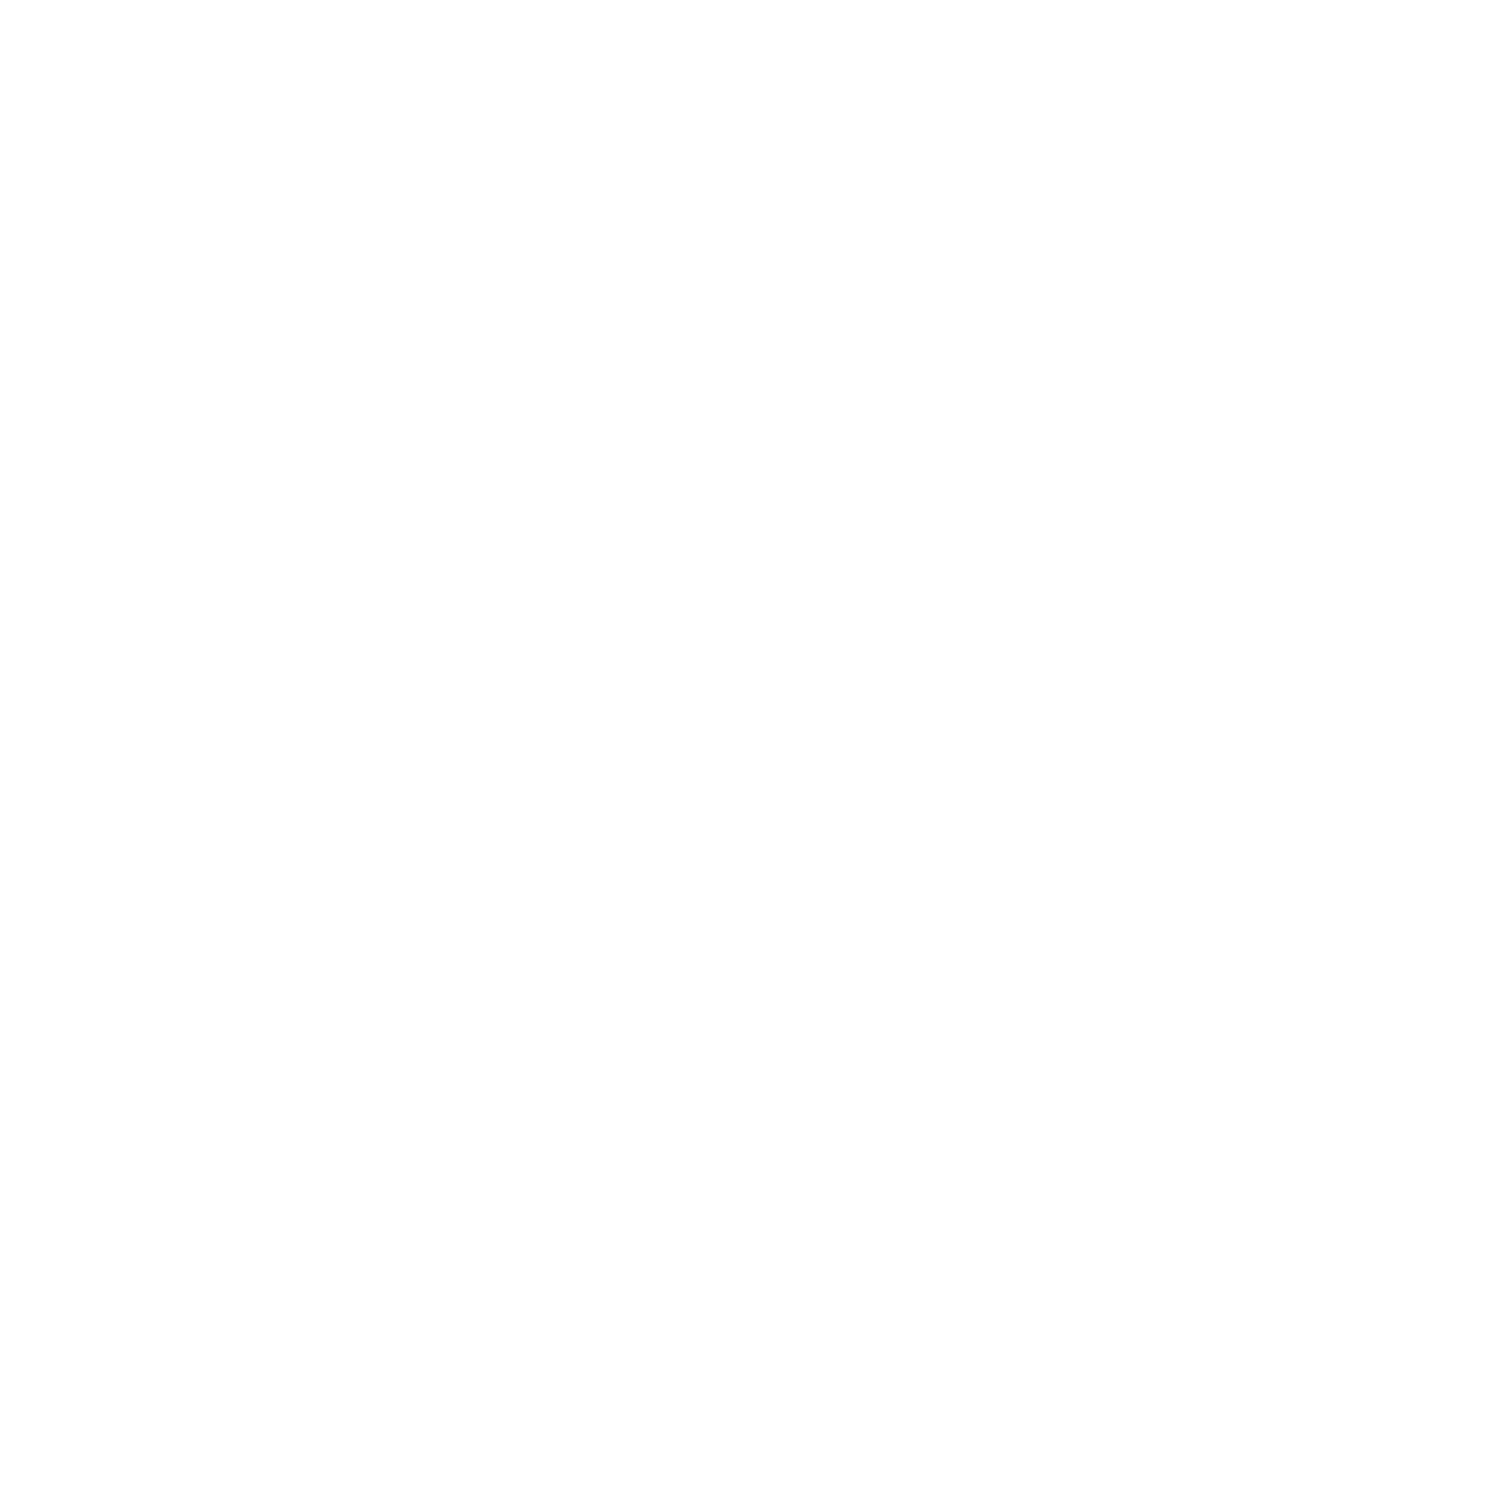 The Kettle Black